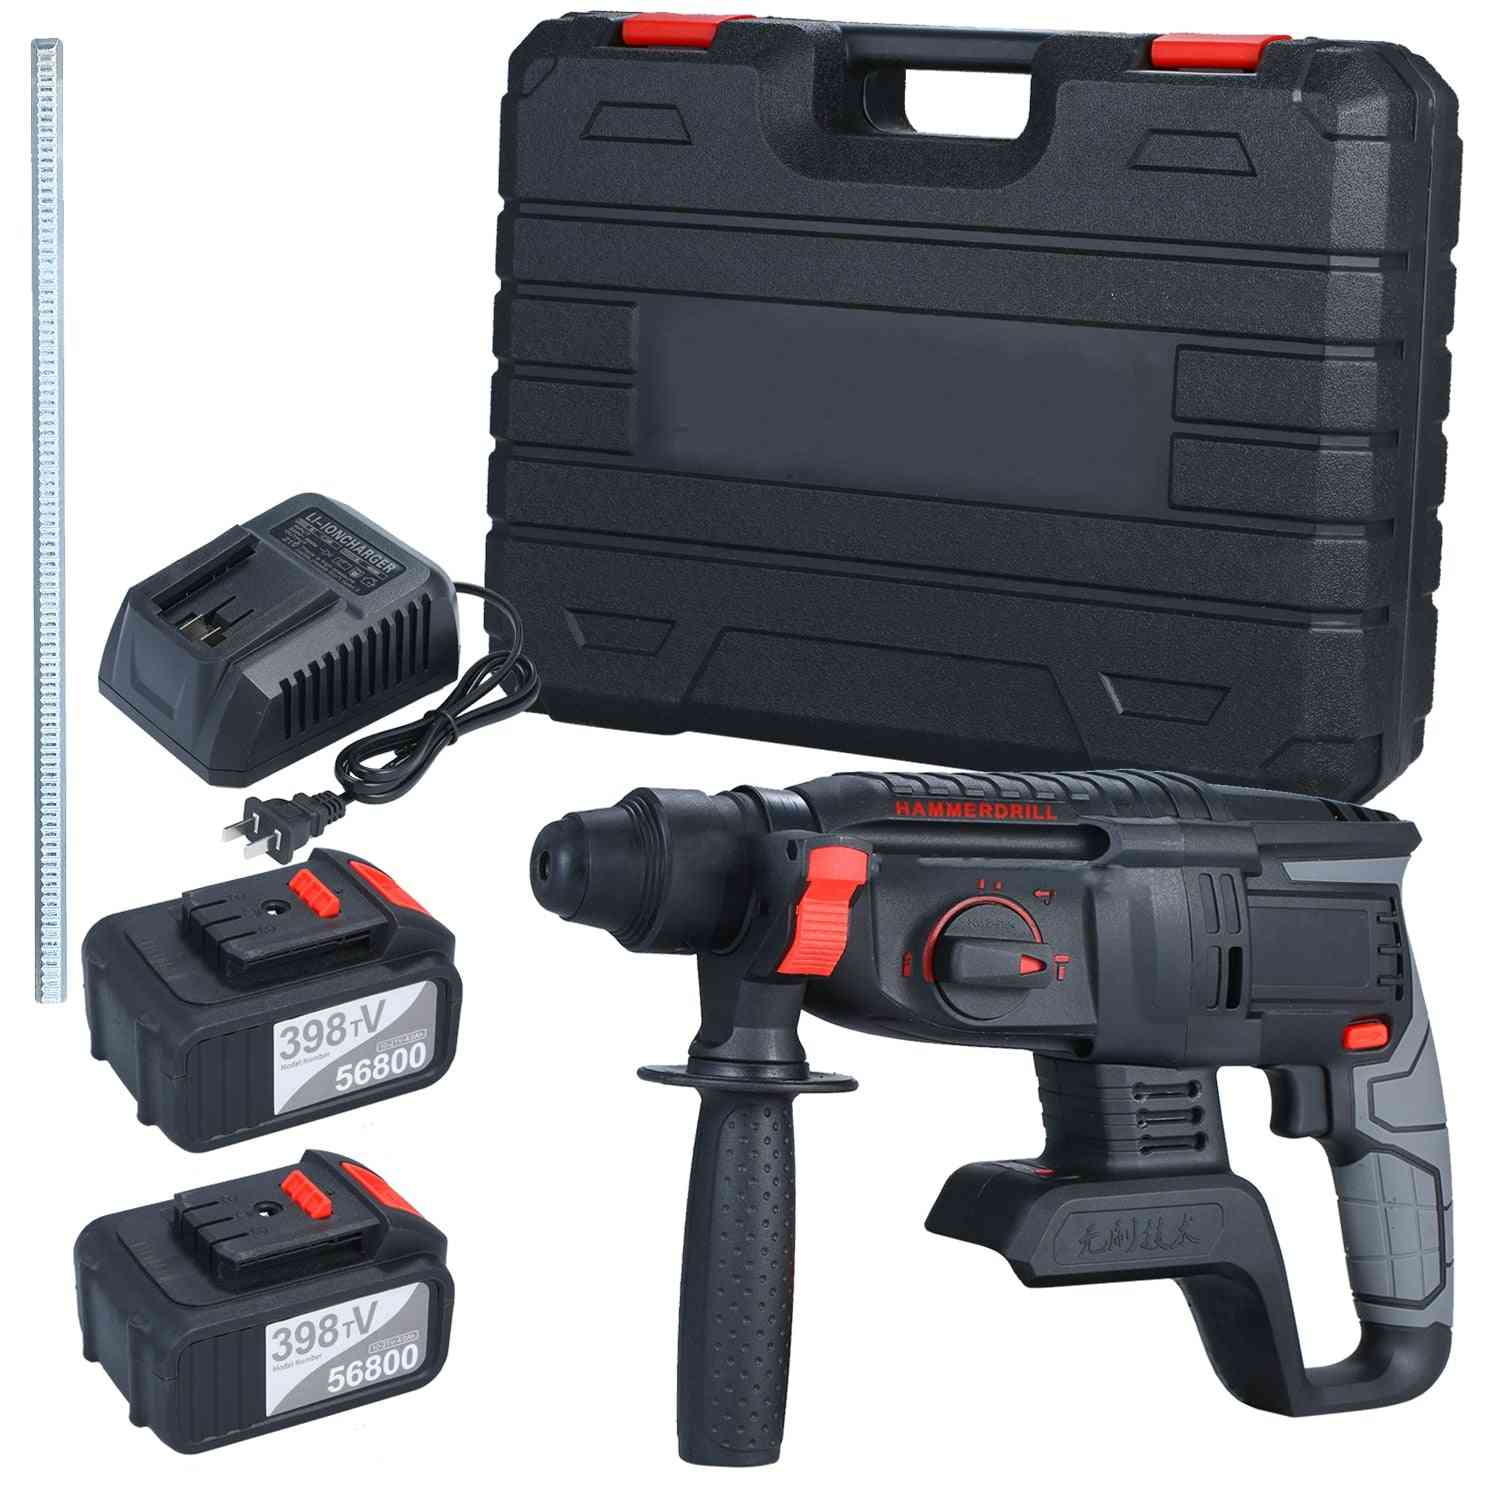 Function Rotary Hammer Drill